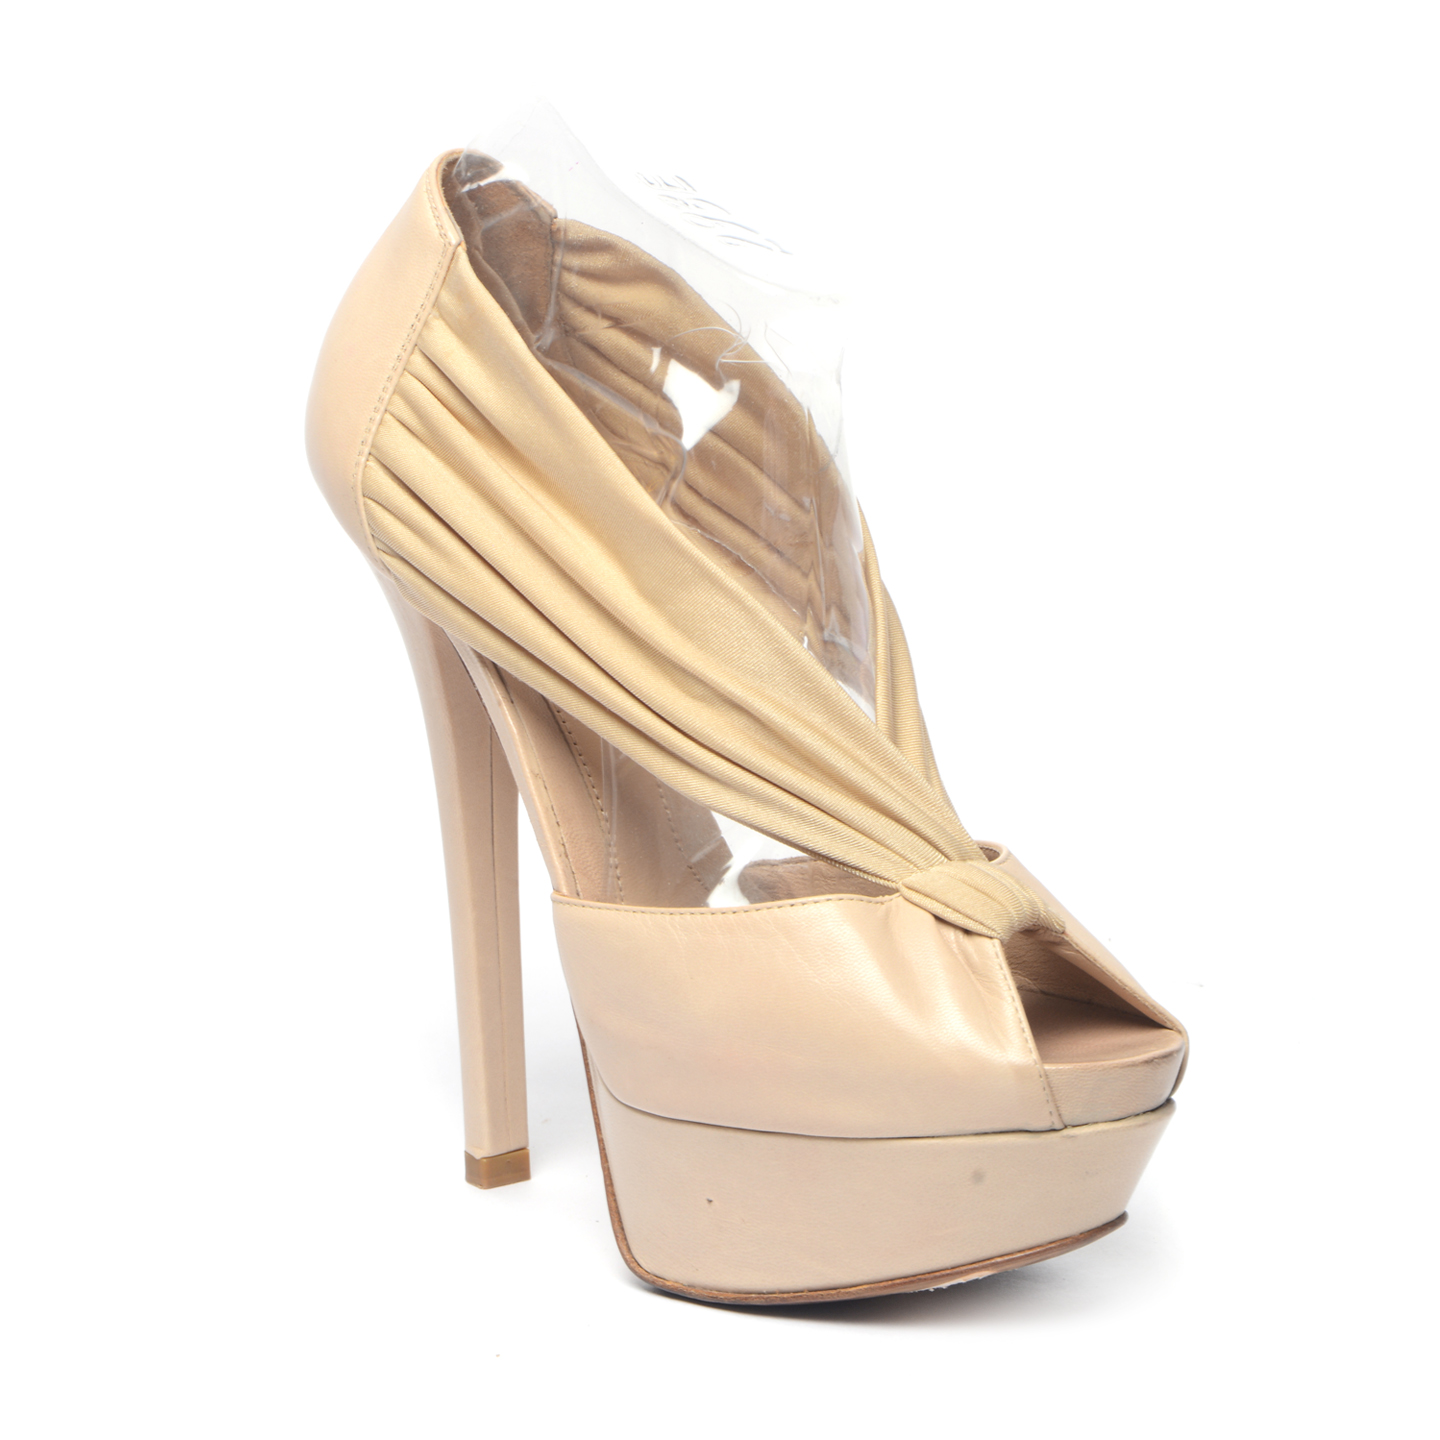 Fendi Gold/Beige Peep-Toe Platform Pumps 01